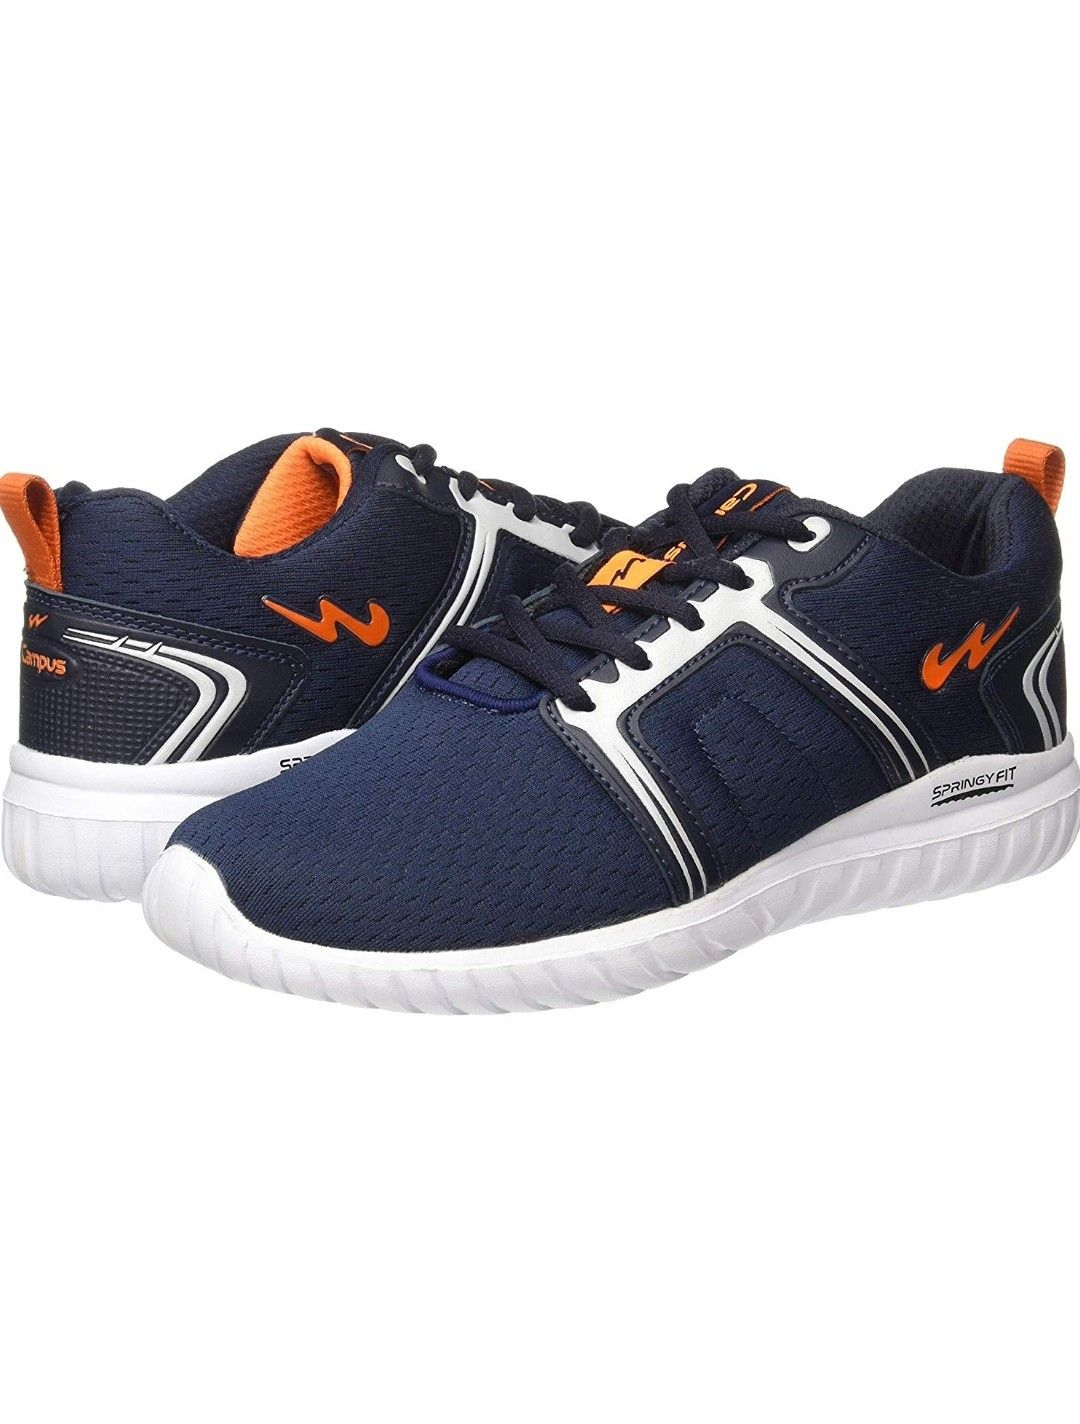 Campus Stylesh Blue Colour Sports Shoes